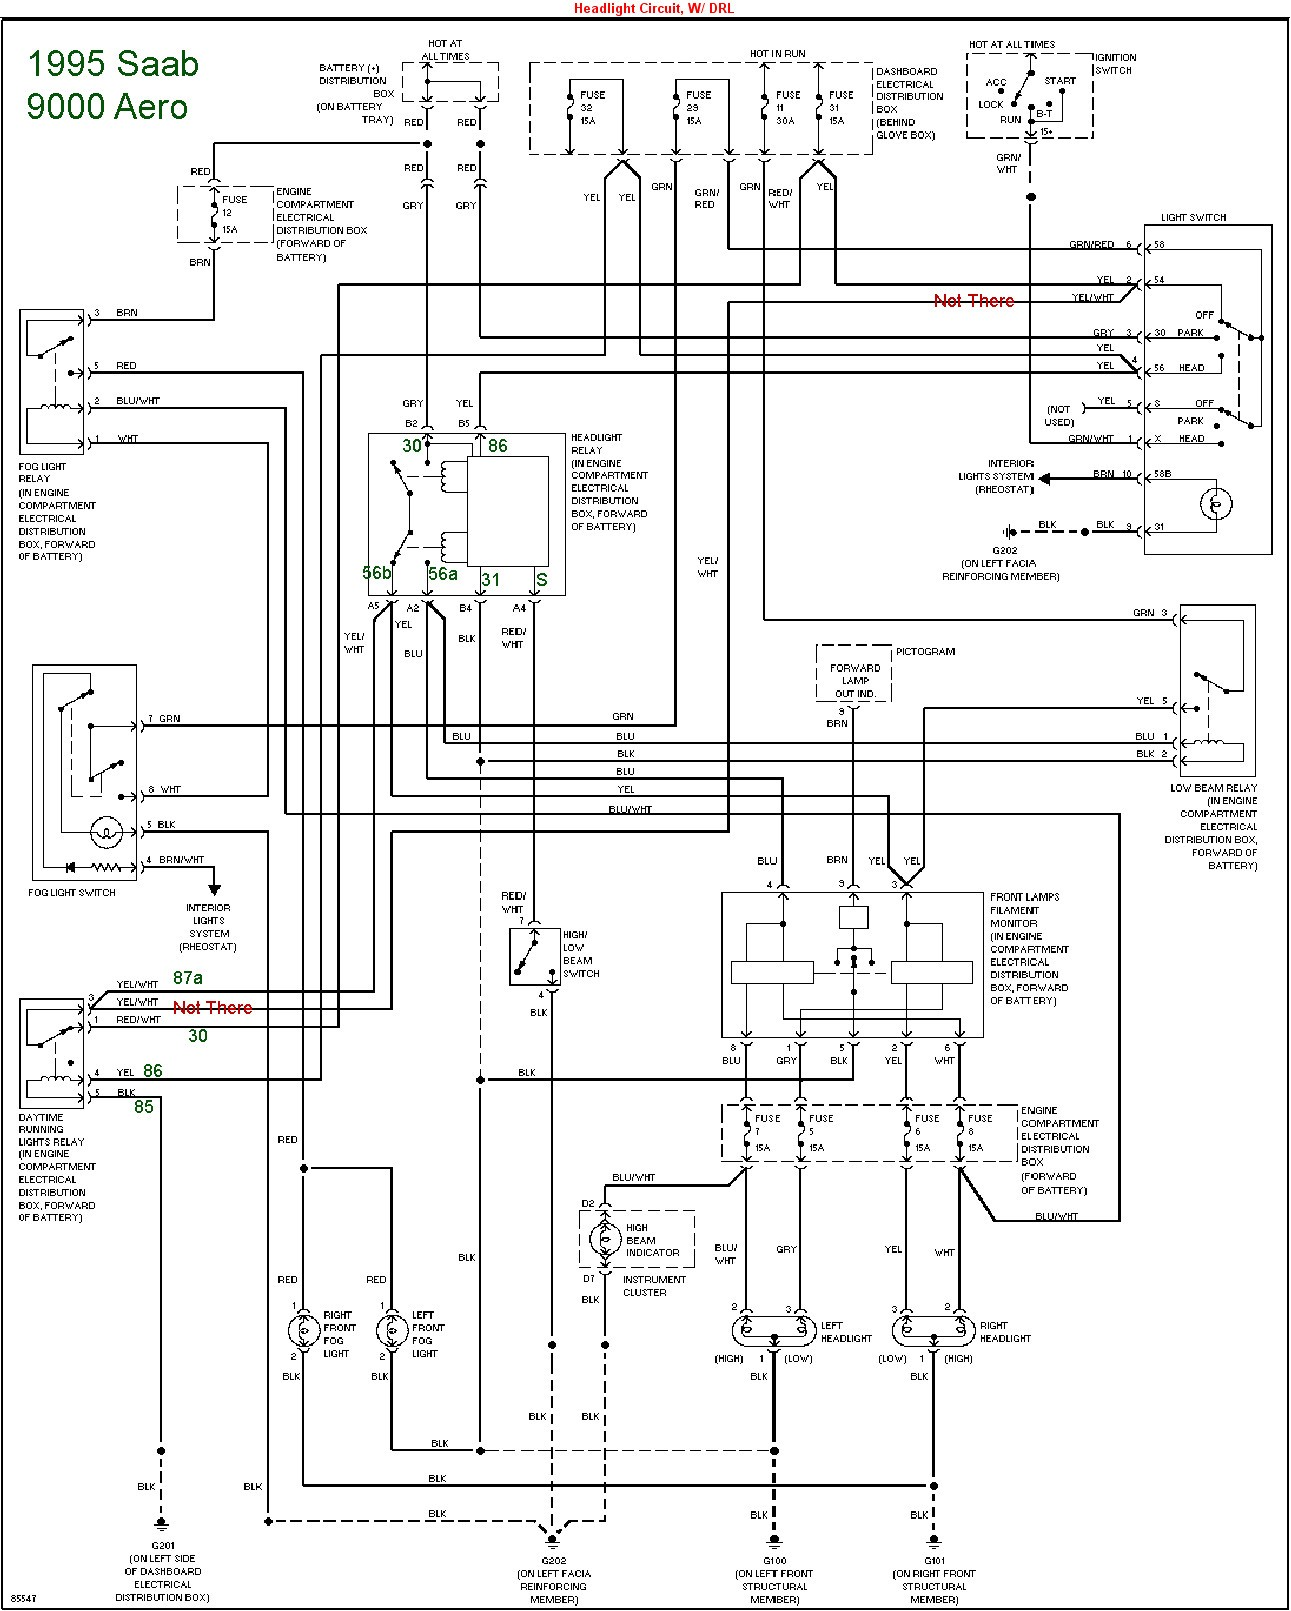 DIAGRAM] Saab 9 3 Diesel Wiring Diagram FULL Version HD Quality Wiring  Diagram - THHNMEANING.CINPACK.FRthhnmeaning.cinpack.fr